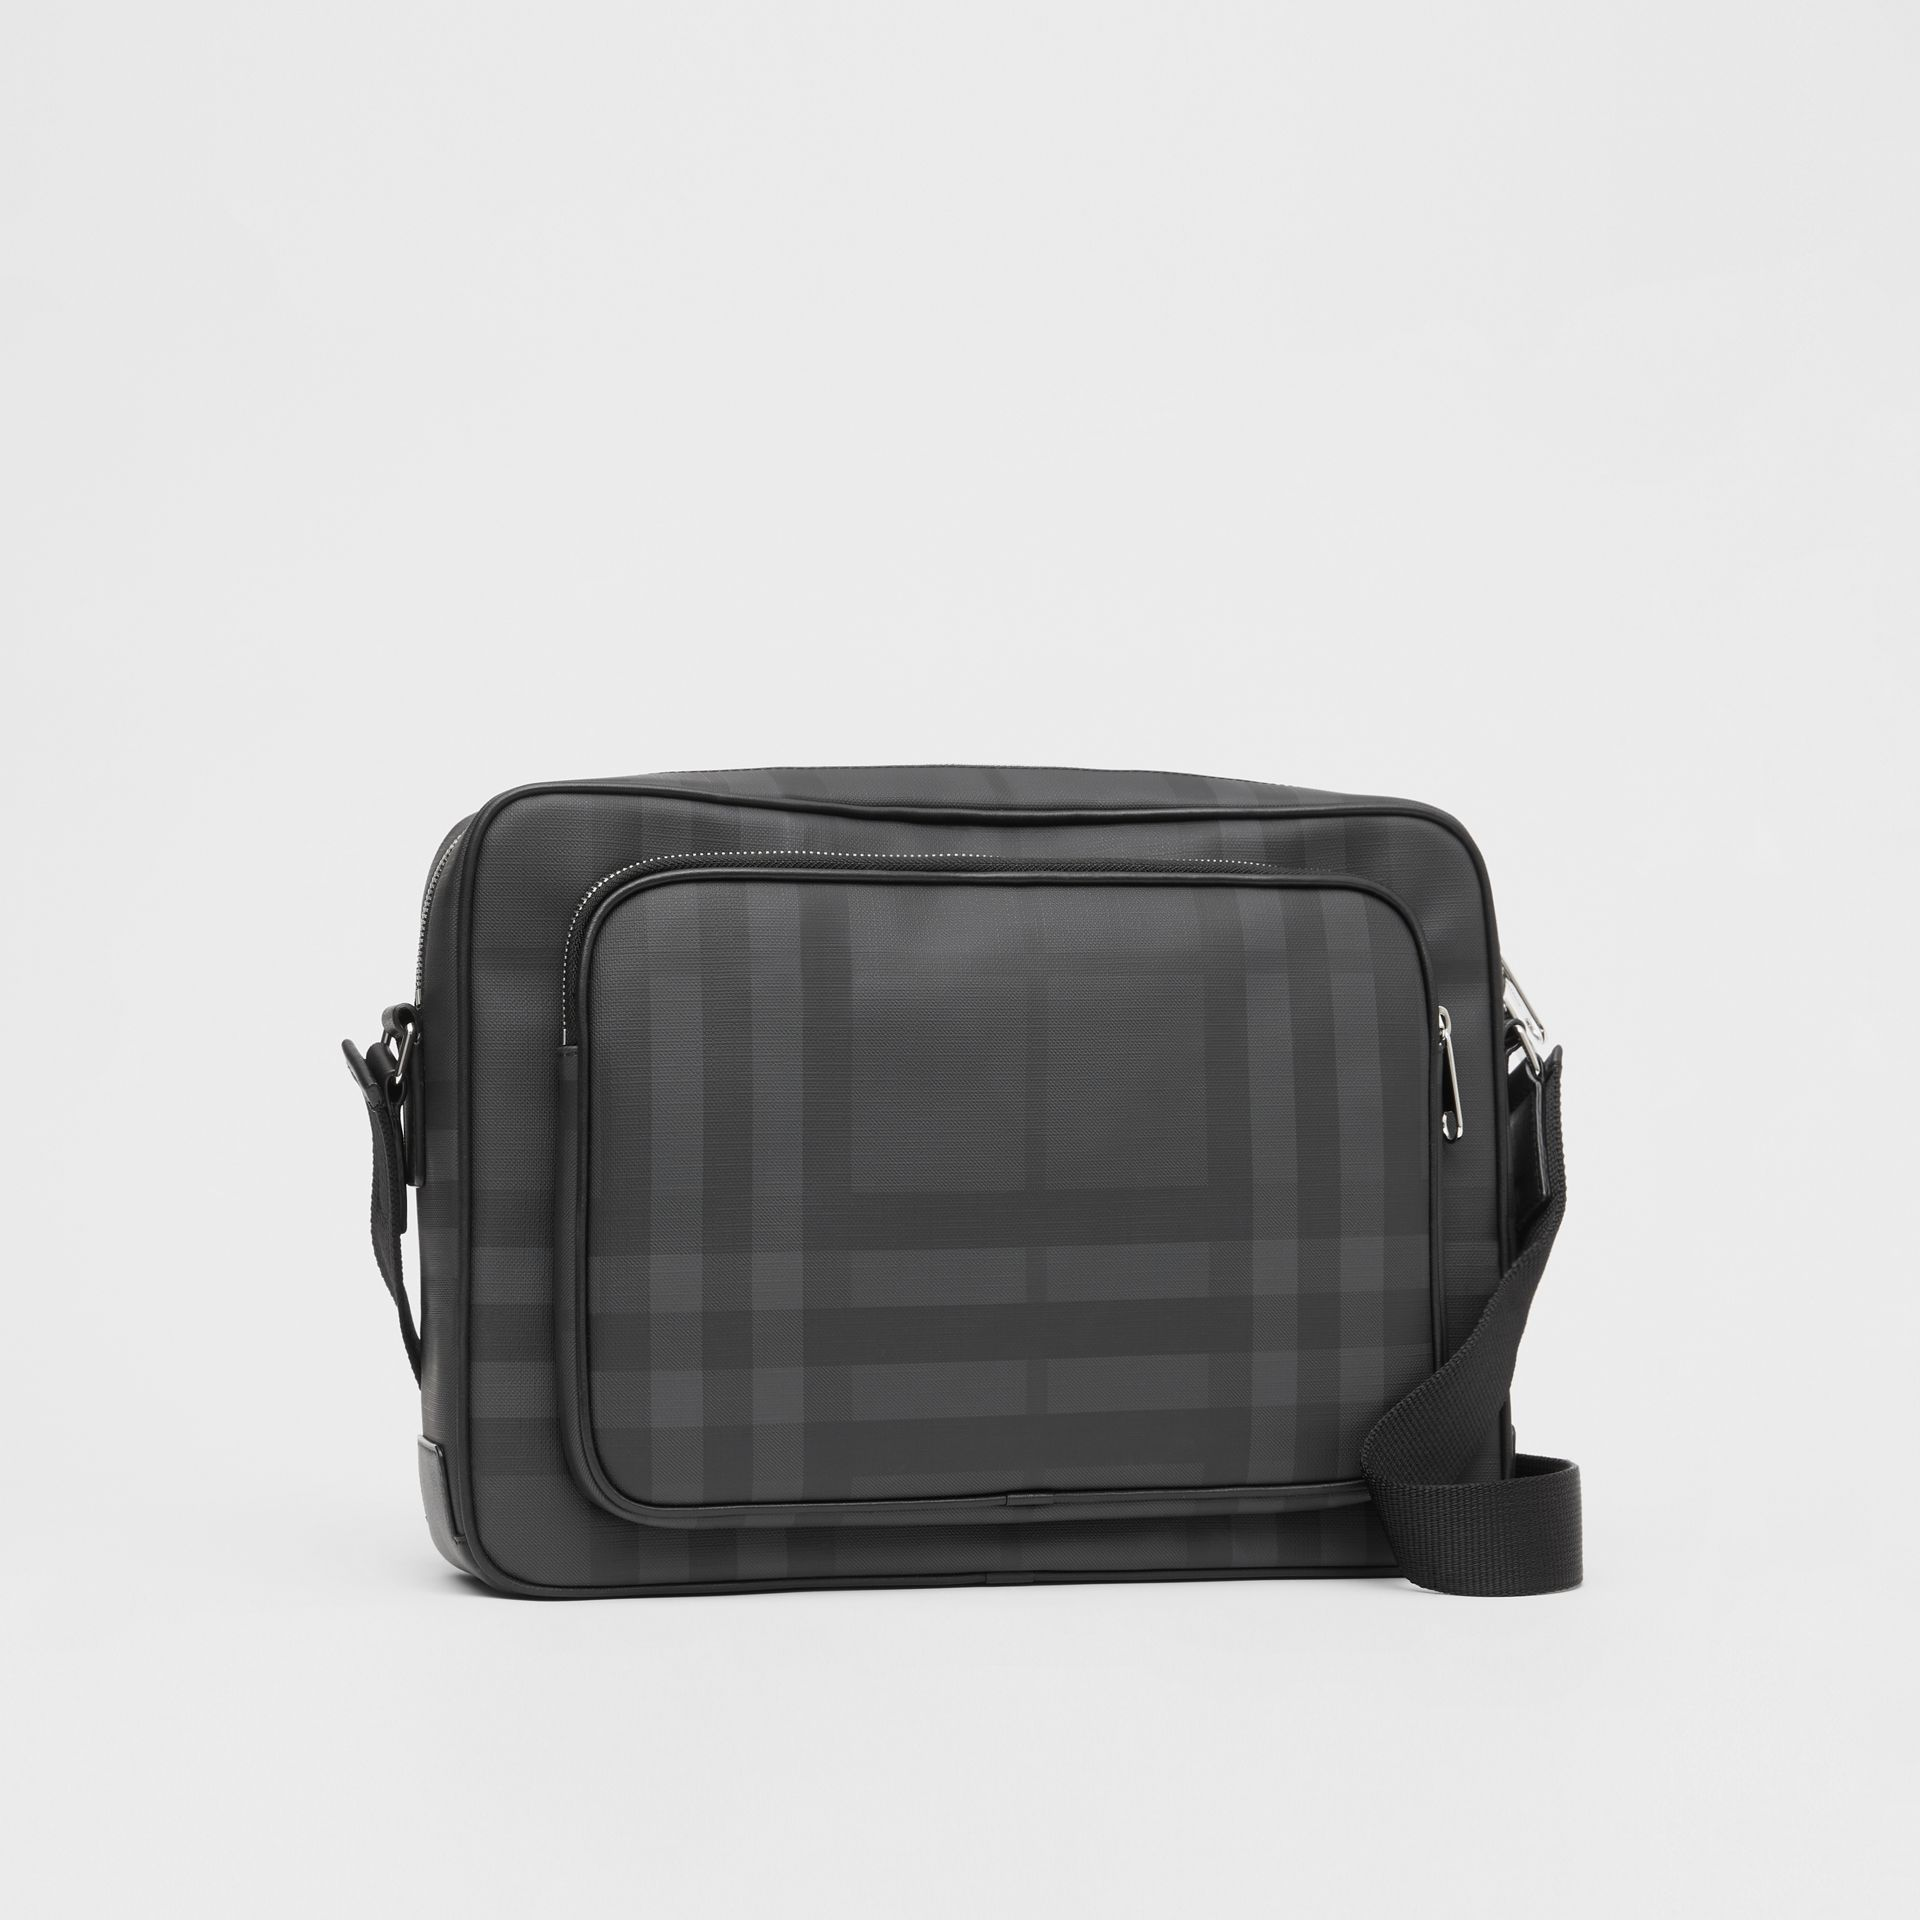 London Check and Leather Messenger Bag in Dark Charcoal - Men | Burberry - gallery image 6